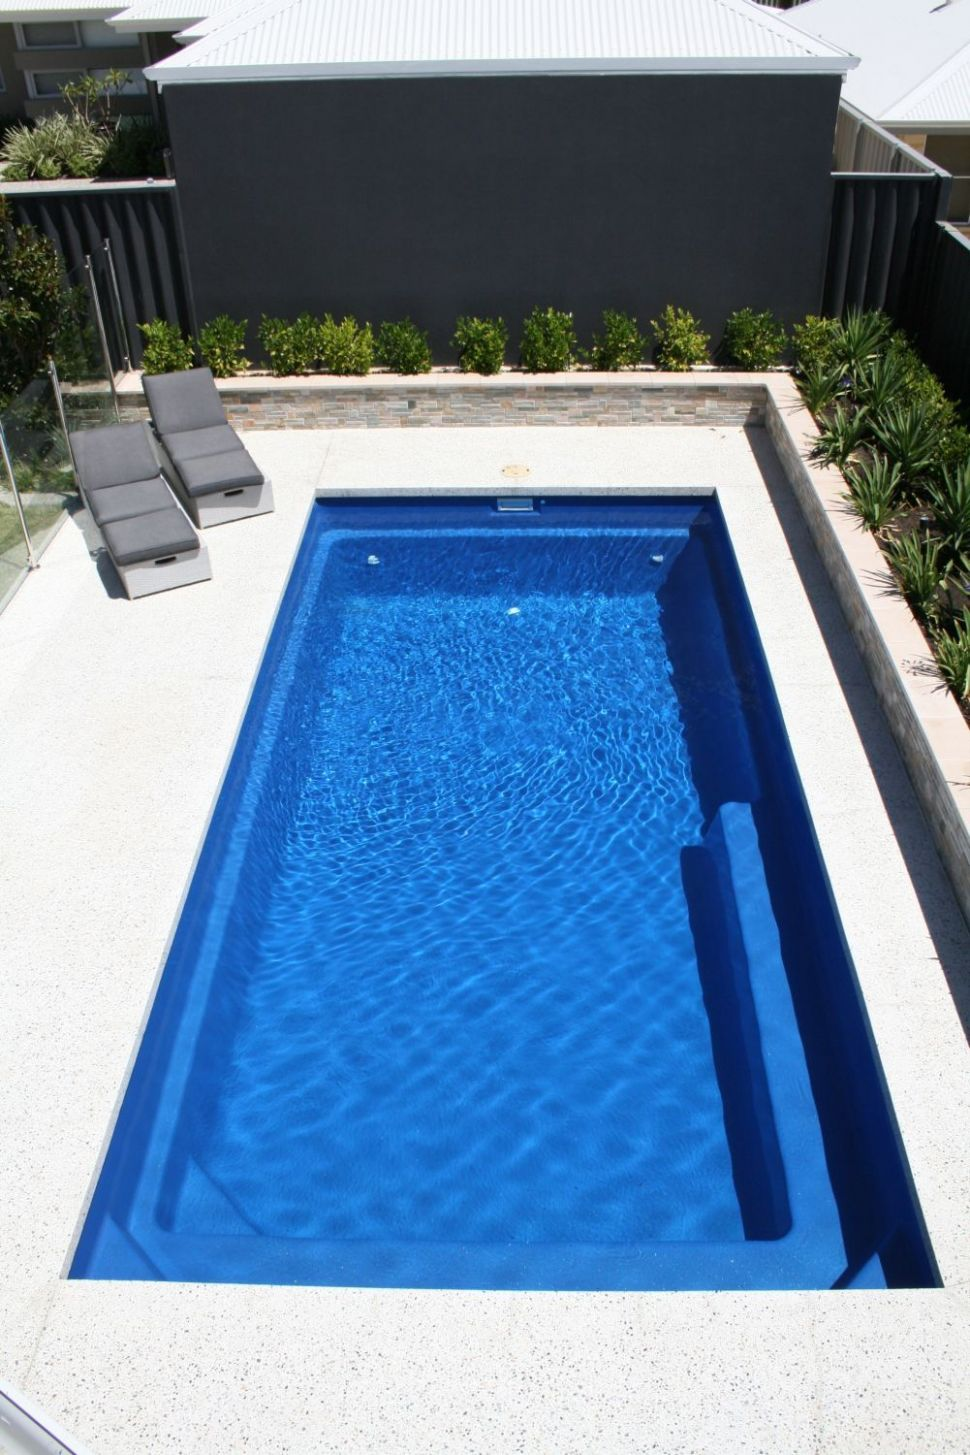 Concrete Pool Surrounds Perth (With images) | Concrete pool ...